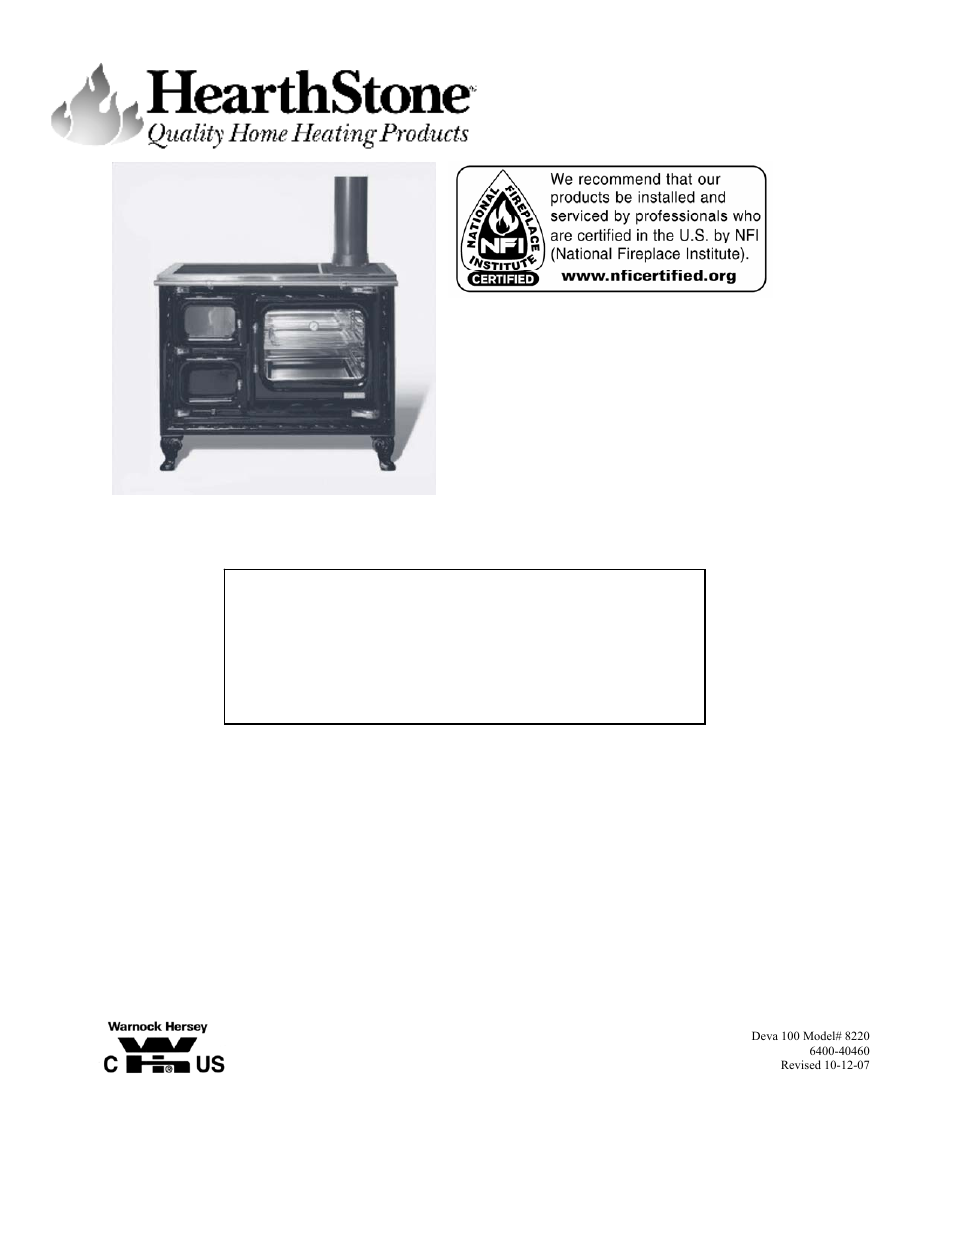 Earth Stove Fireplace Insert Manual